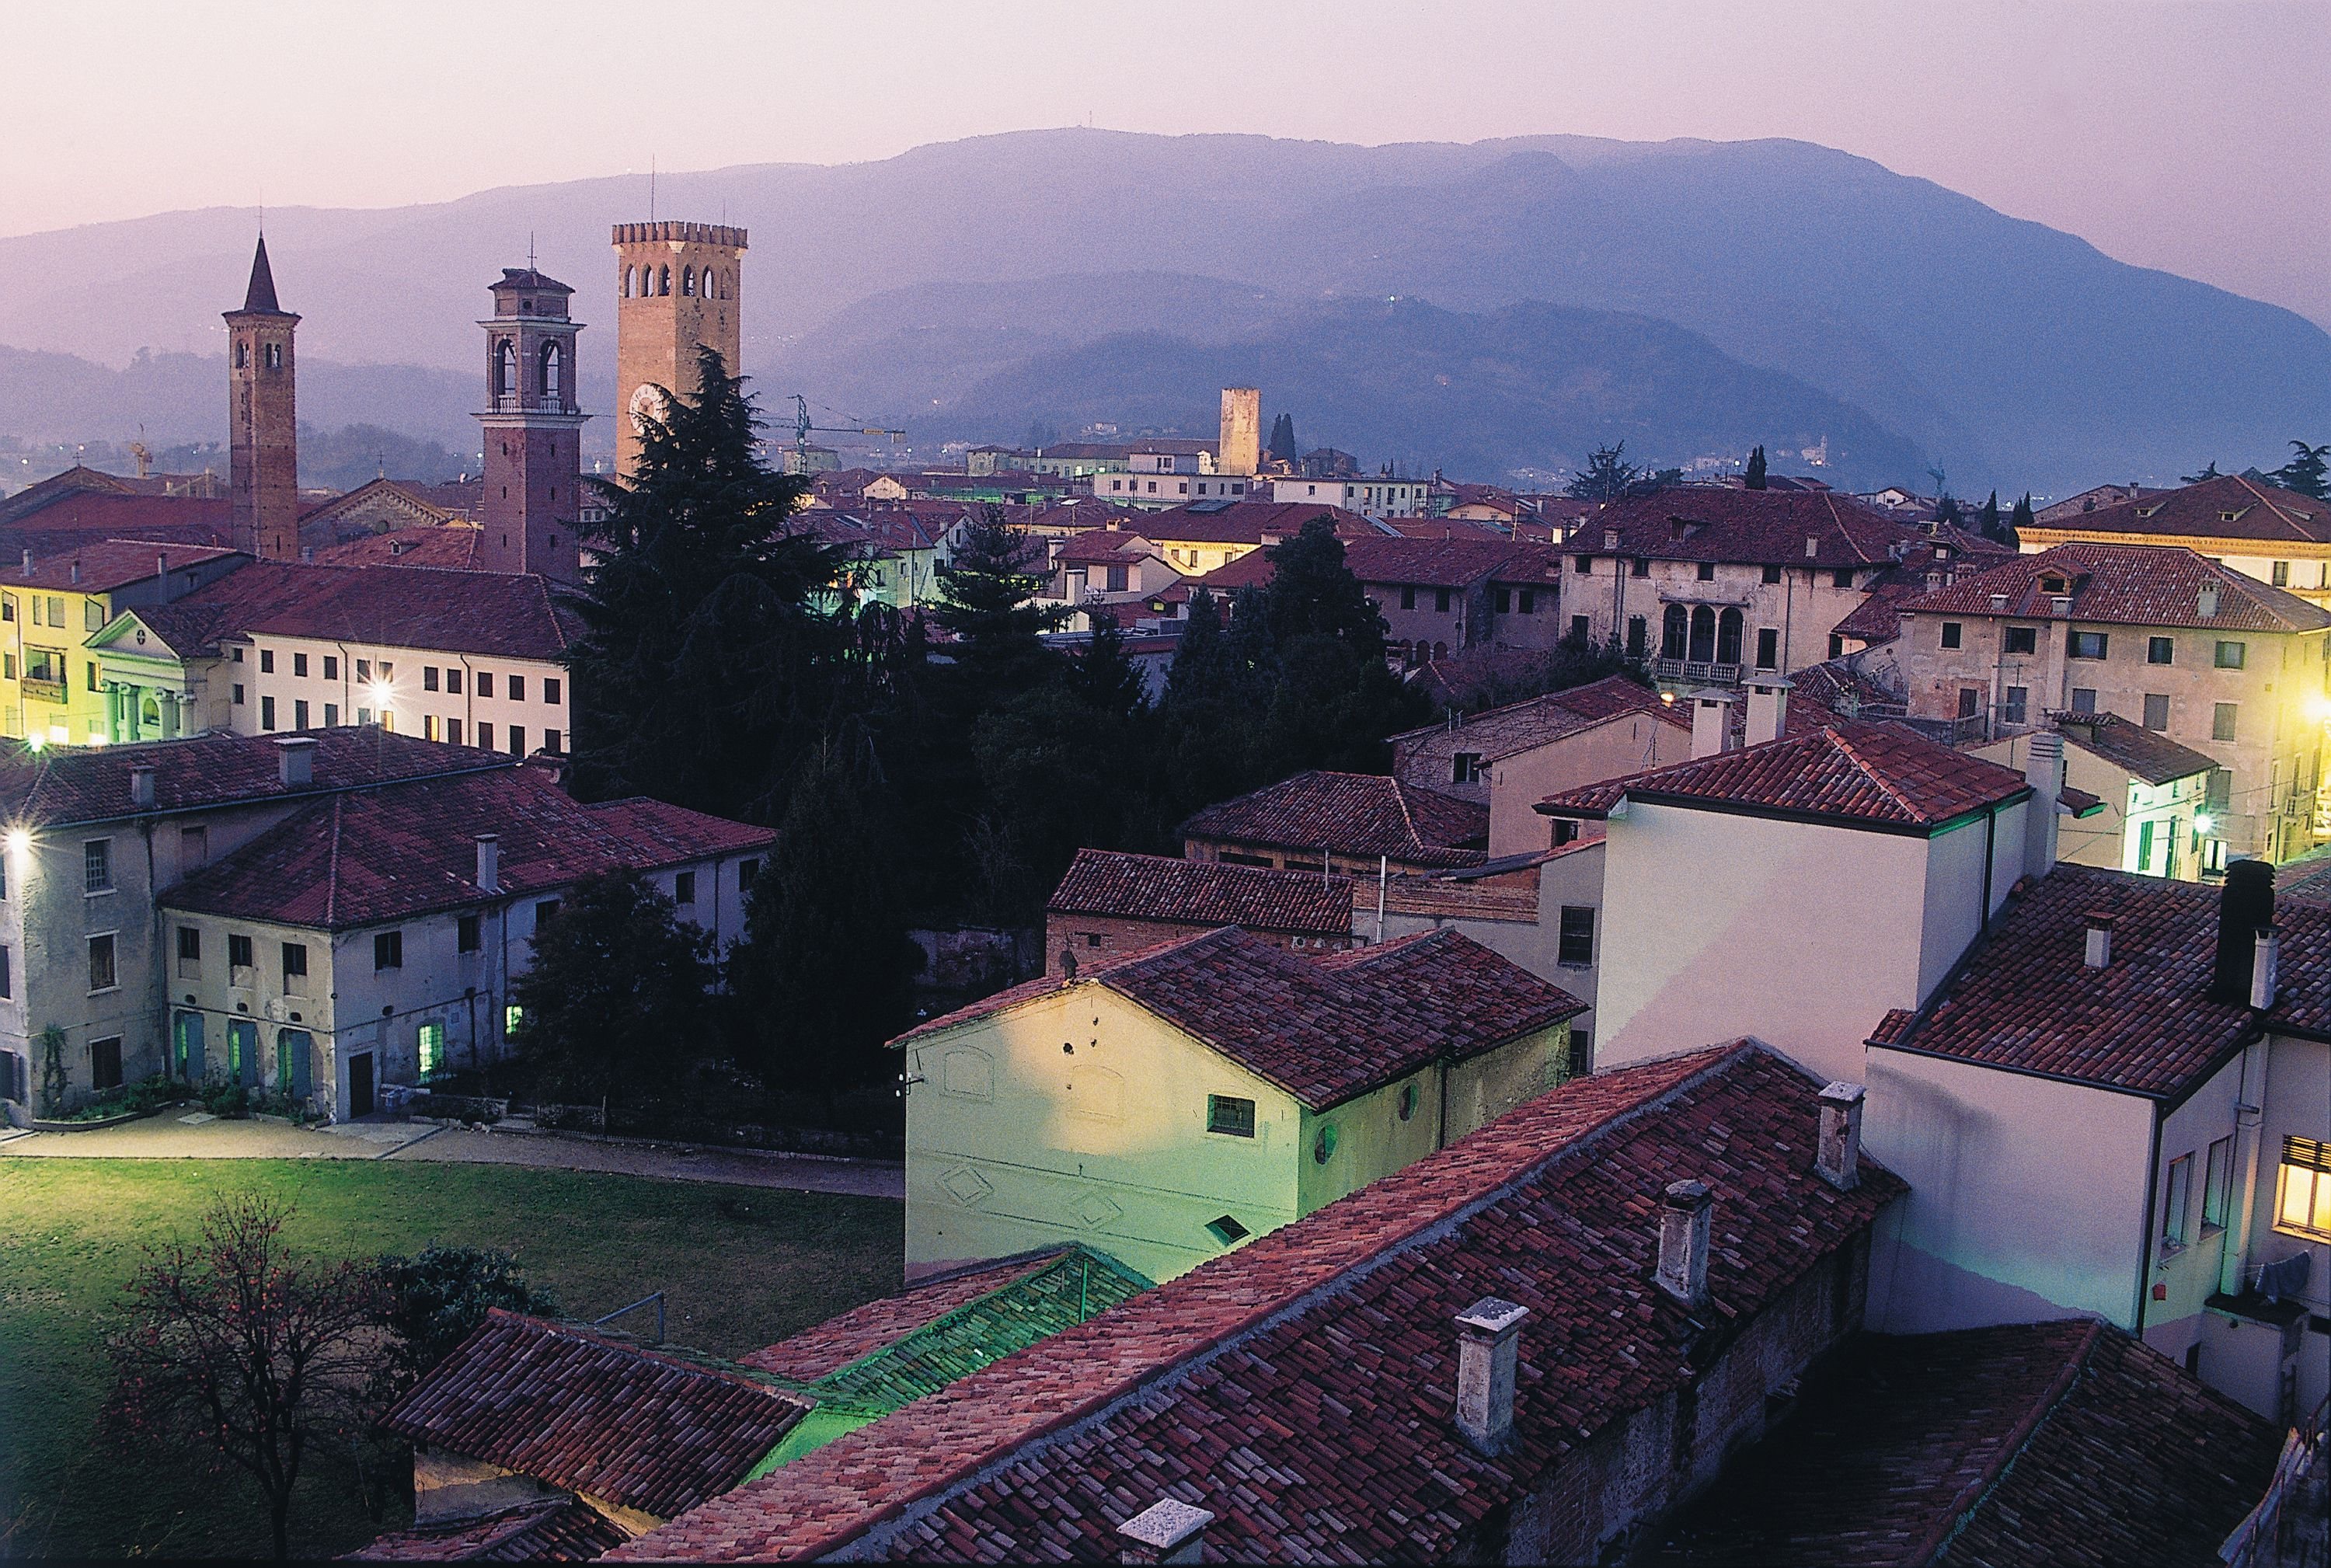 Sunset over the rooftops of Bassano del Grappa, Italy